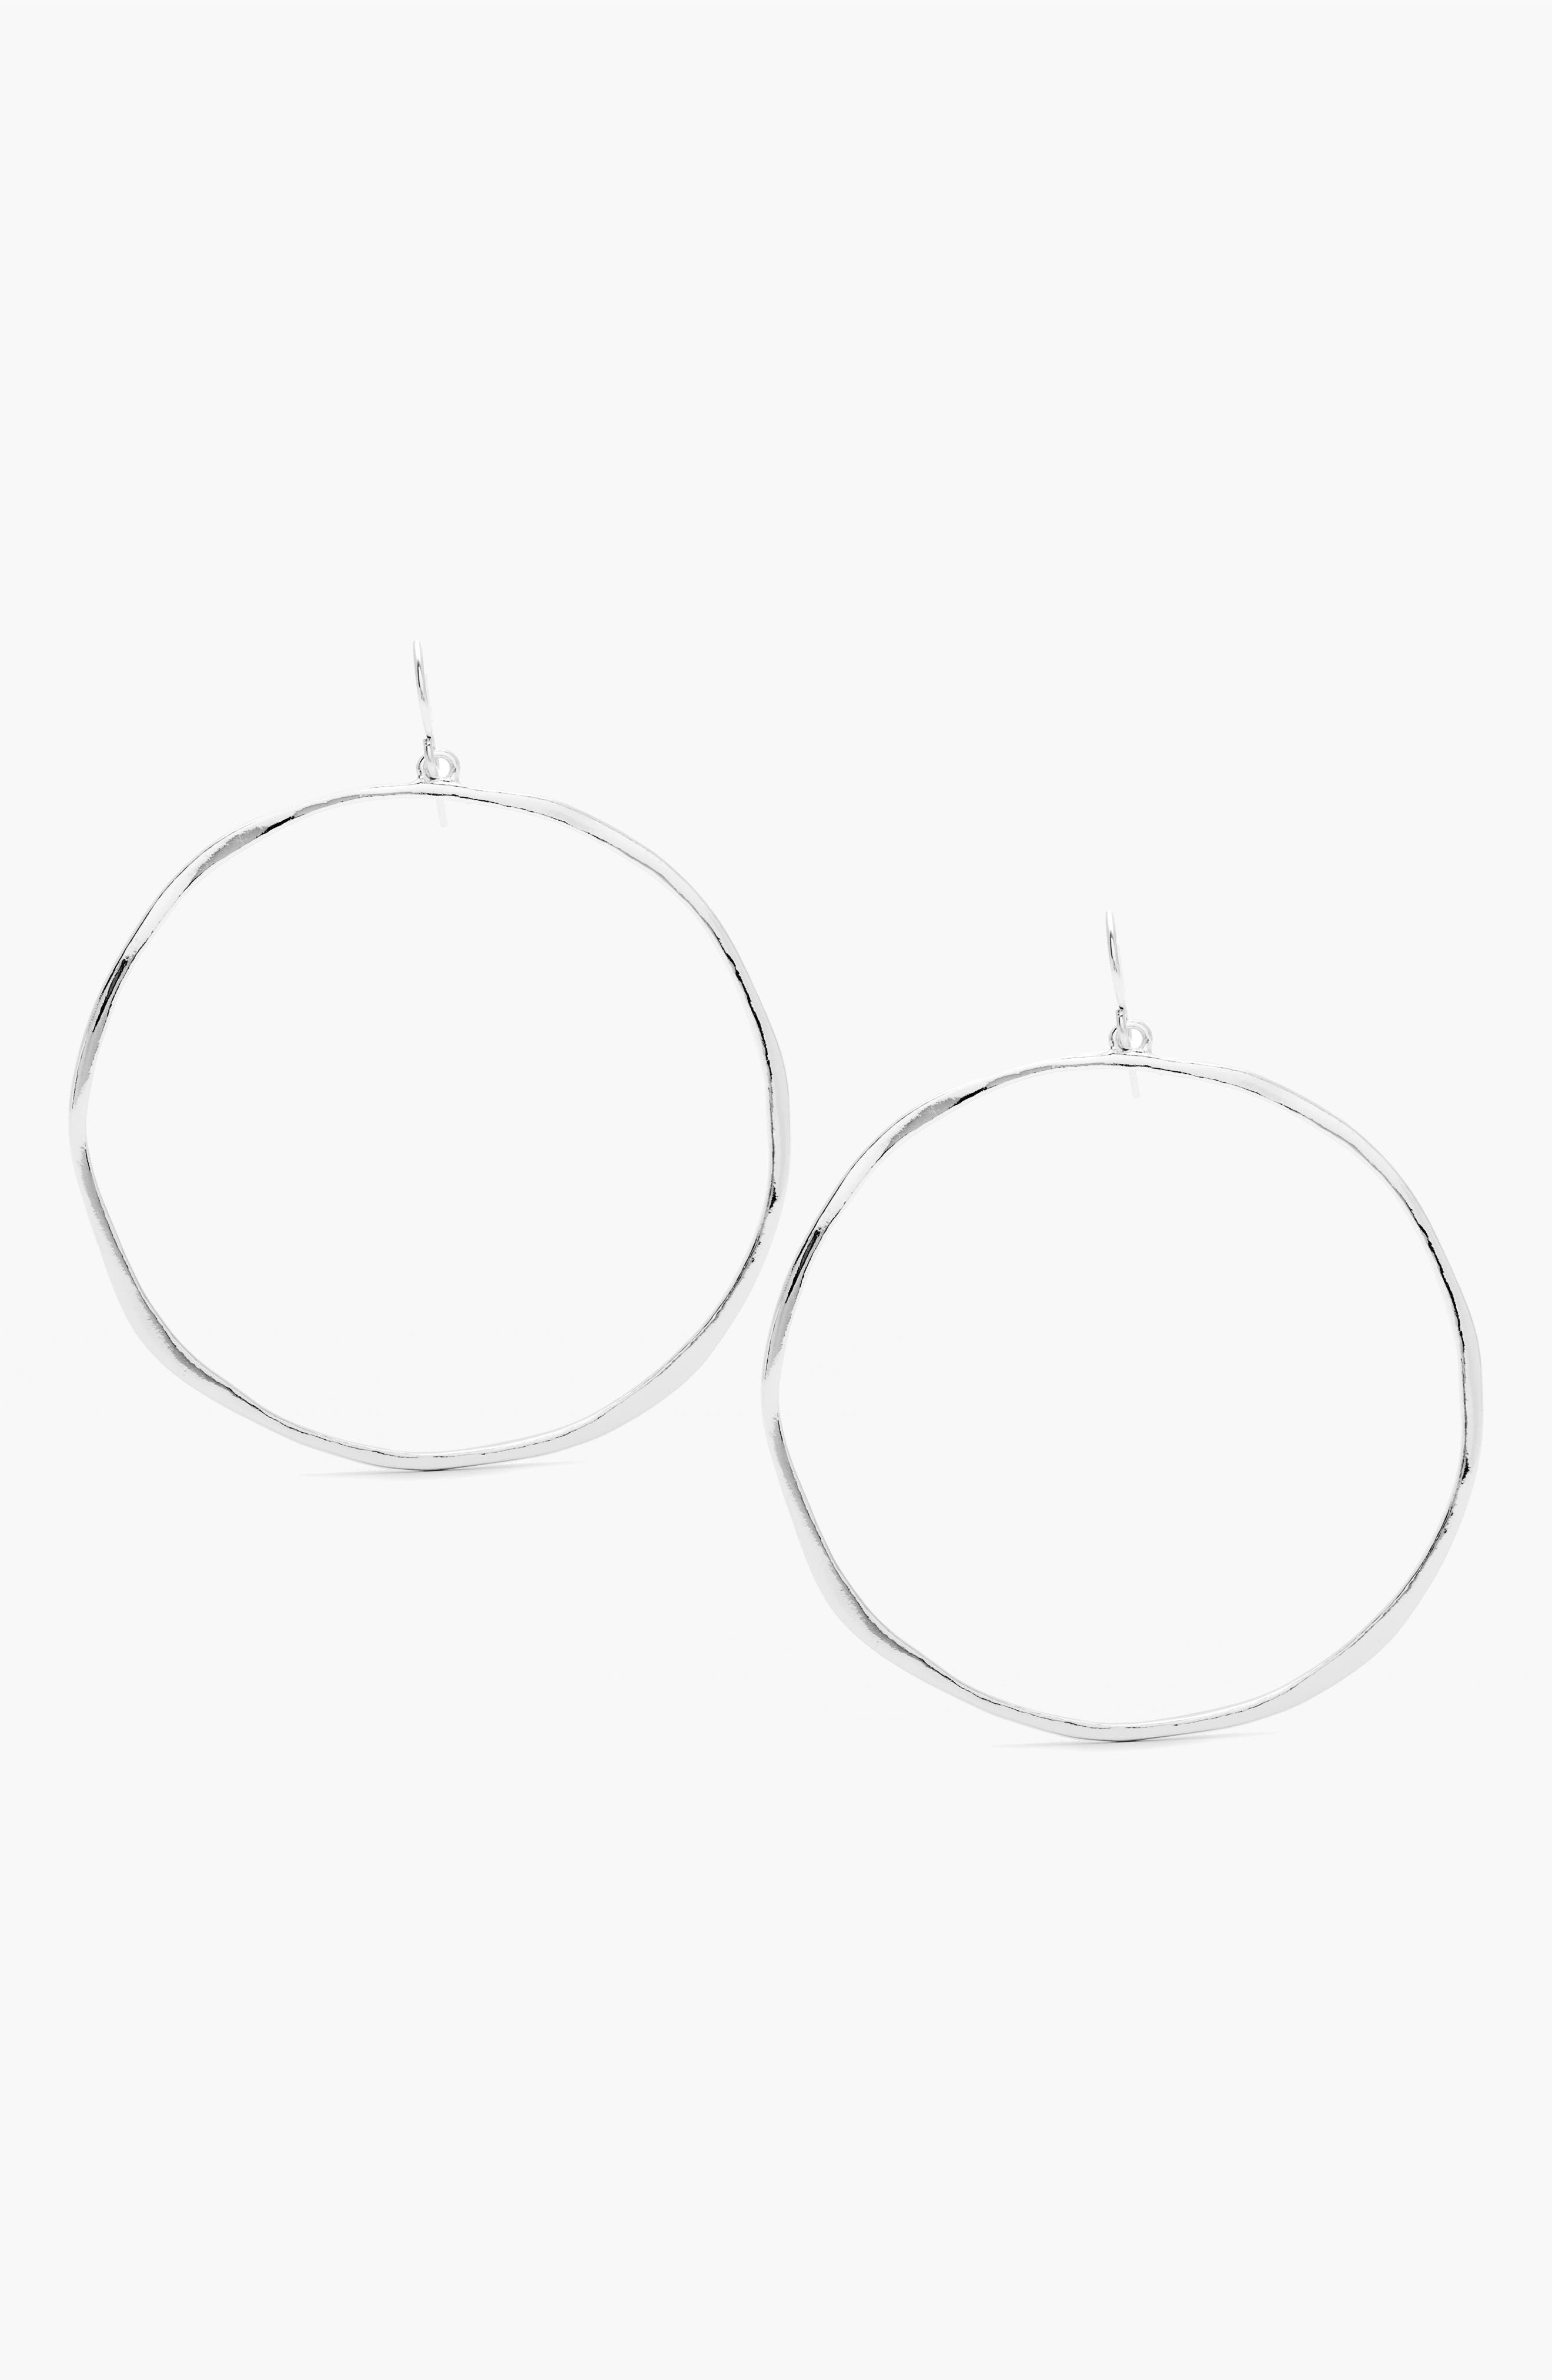 G Ring Hoops,                             Alternate thumbnail 4, color,                             SILVER